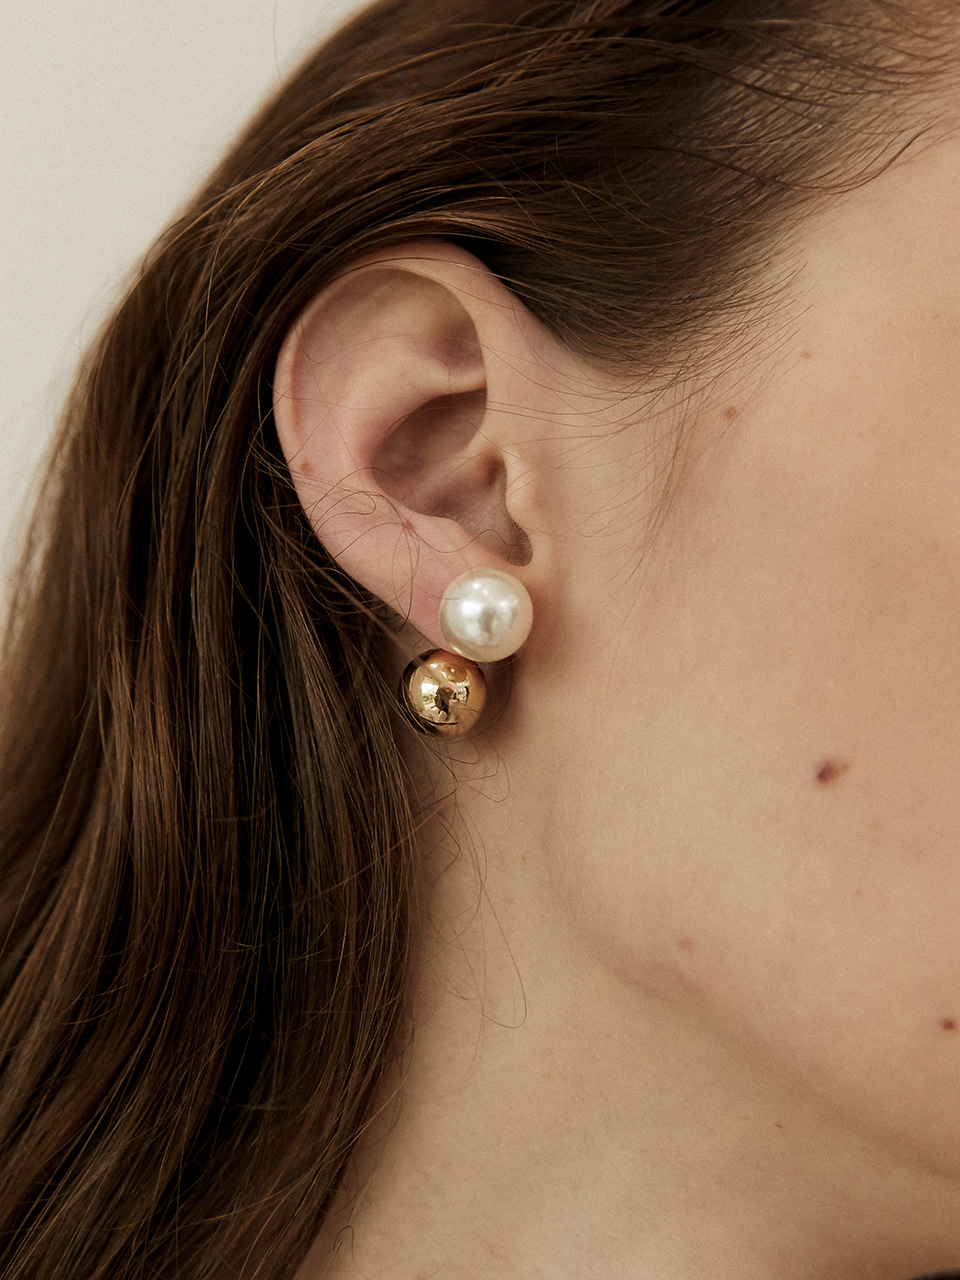 one ball earring